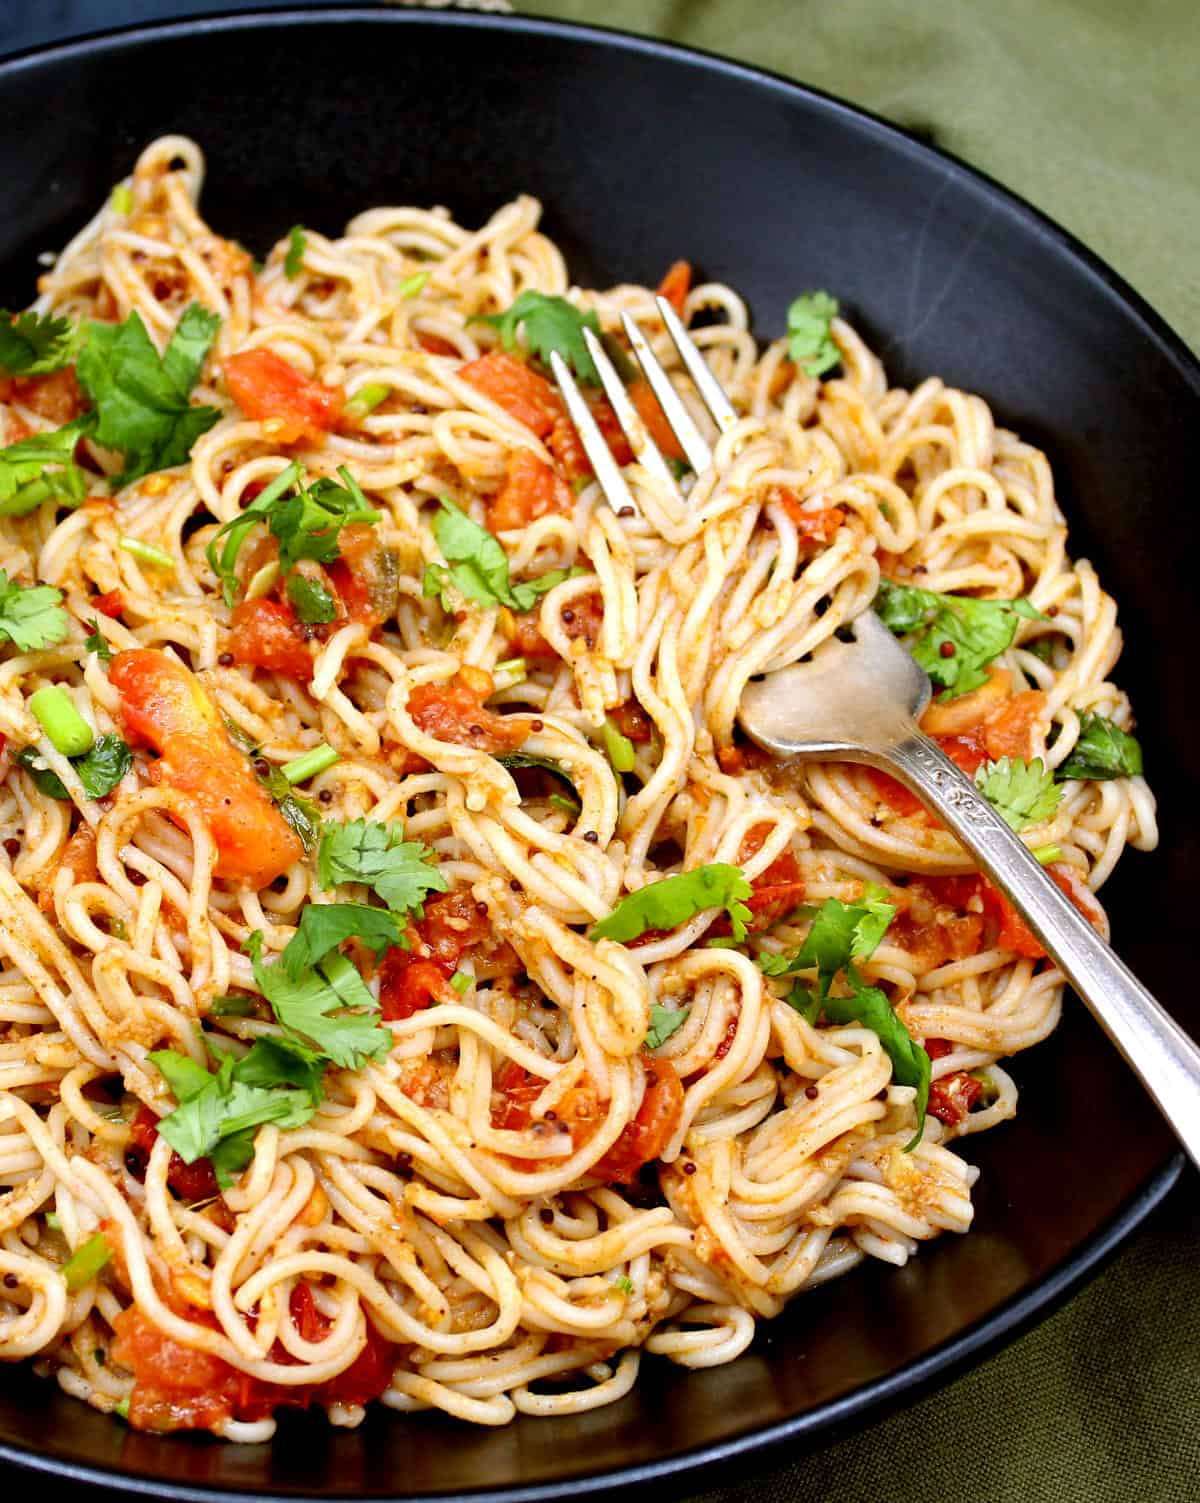 Photo of instant garlic and chili ramen noodles in a black bowl with tomatoes, cilantro and a fork.